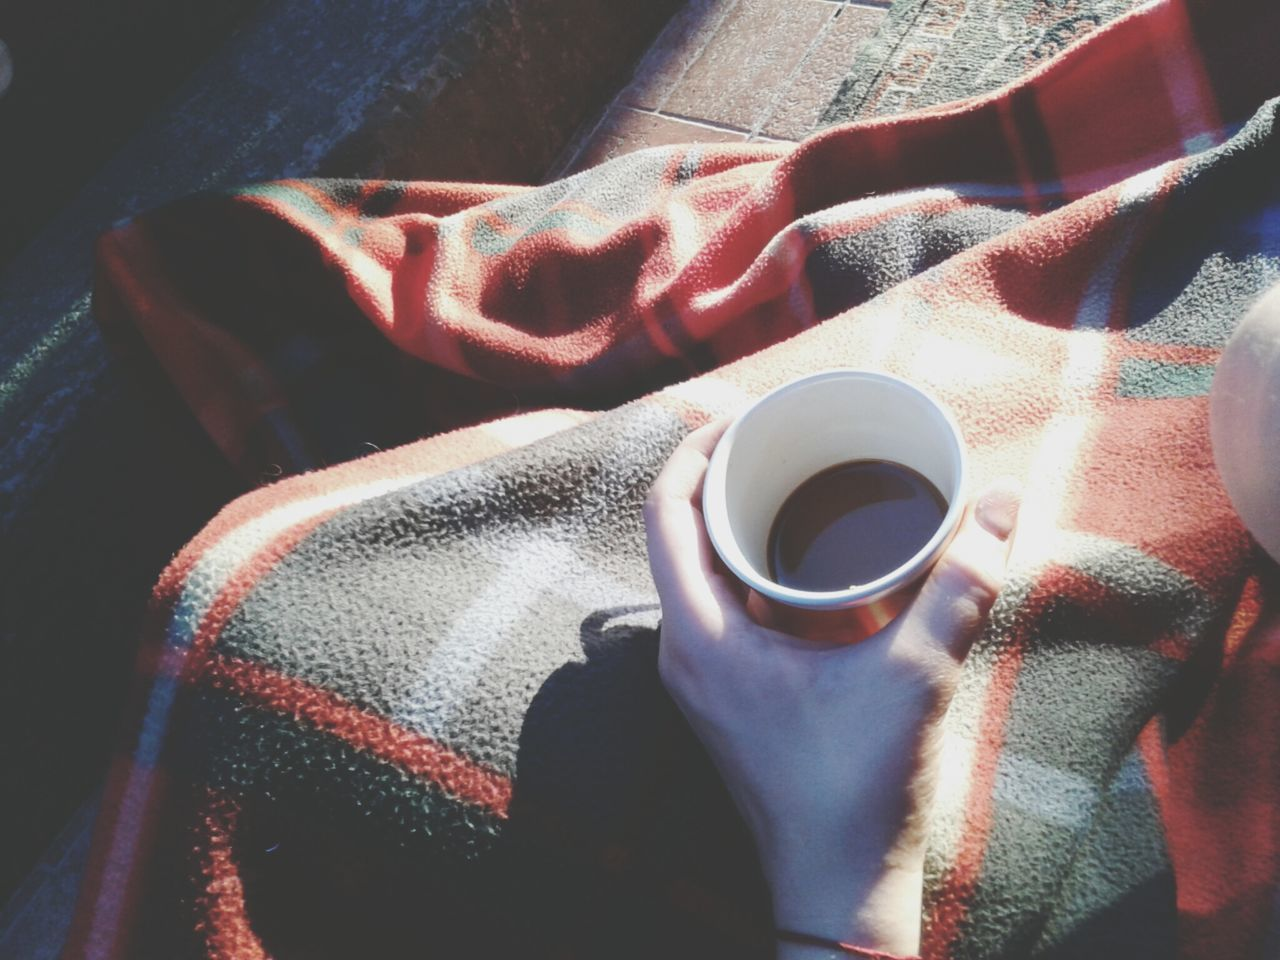 Chilling time on my terasse with my sis! Nescafe Chilling Blanket Sun